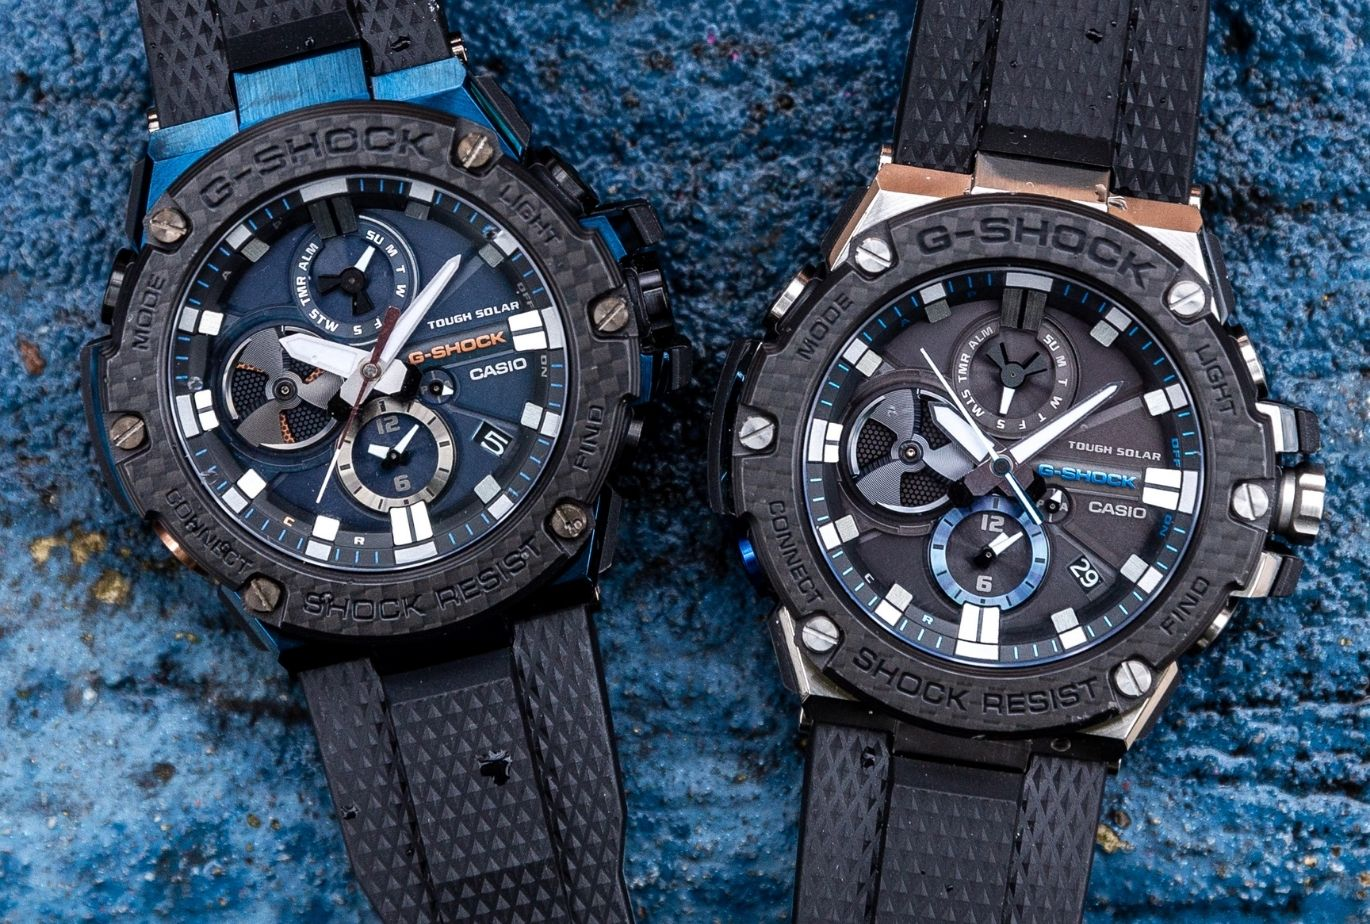 Gregory's Fine Jewelry G-Shock Collection